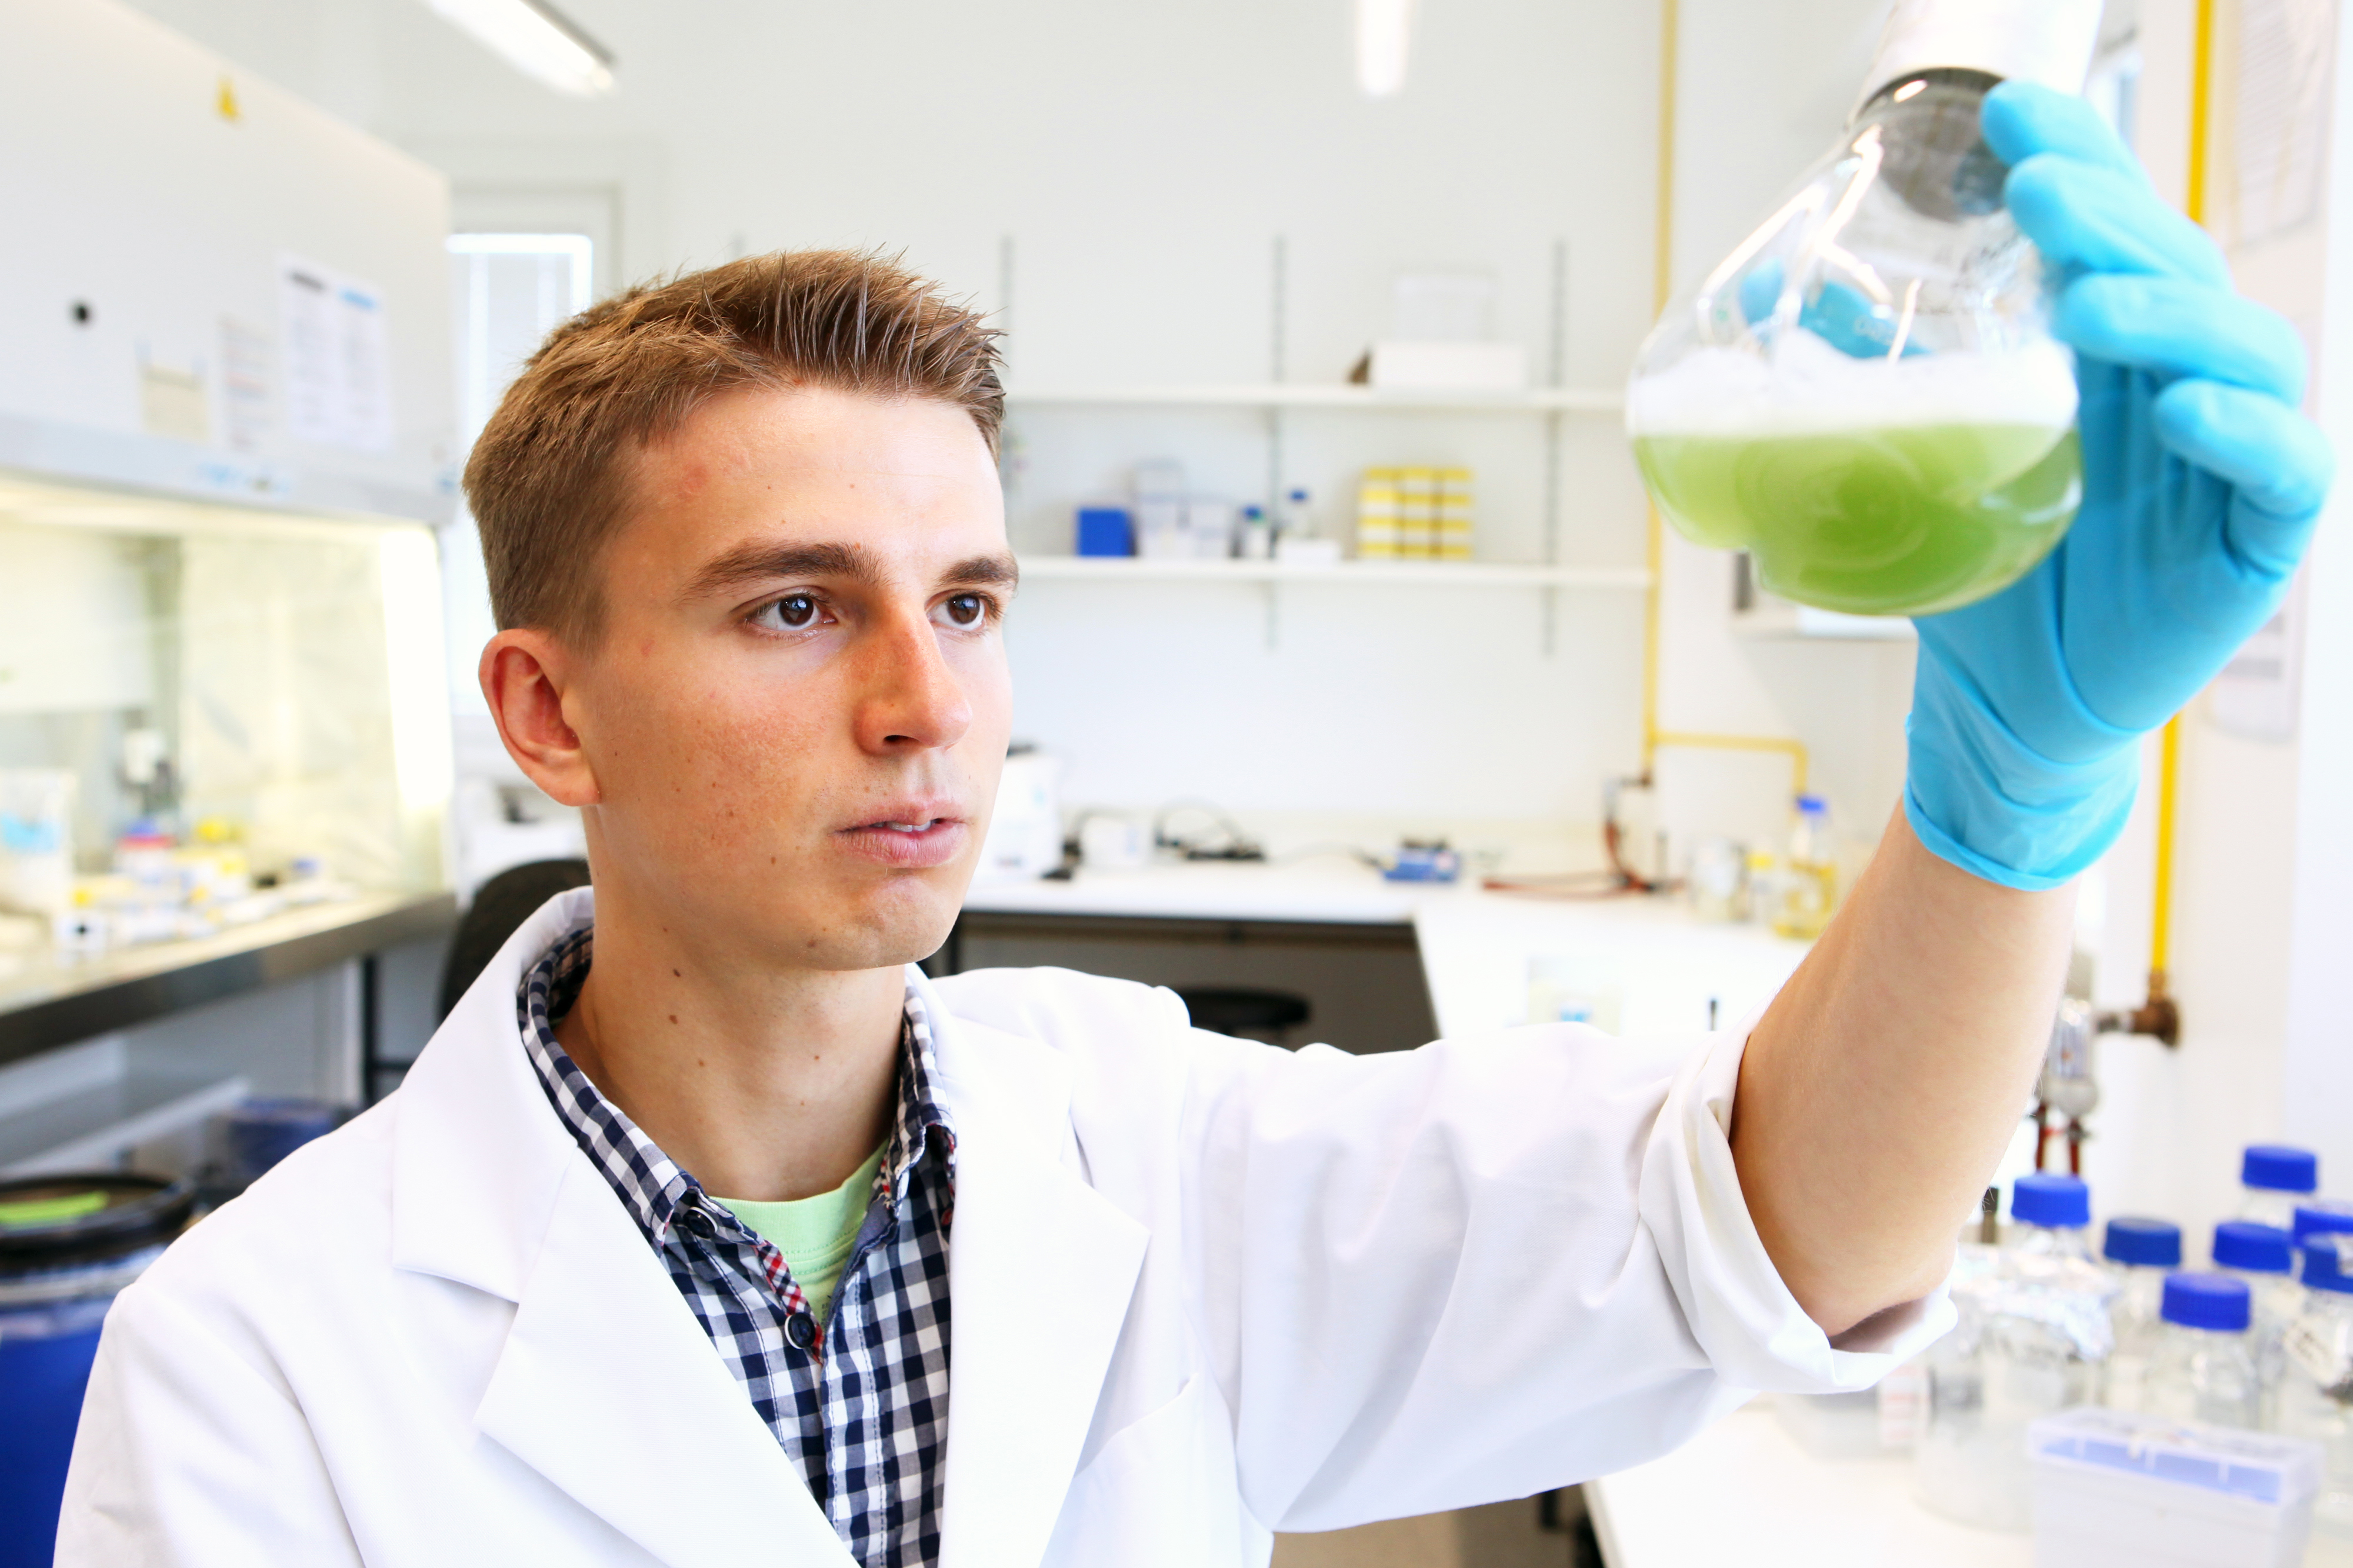 A man observes bacteria in a glass container